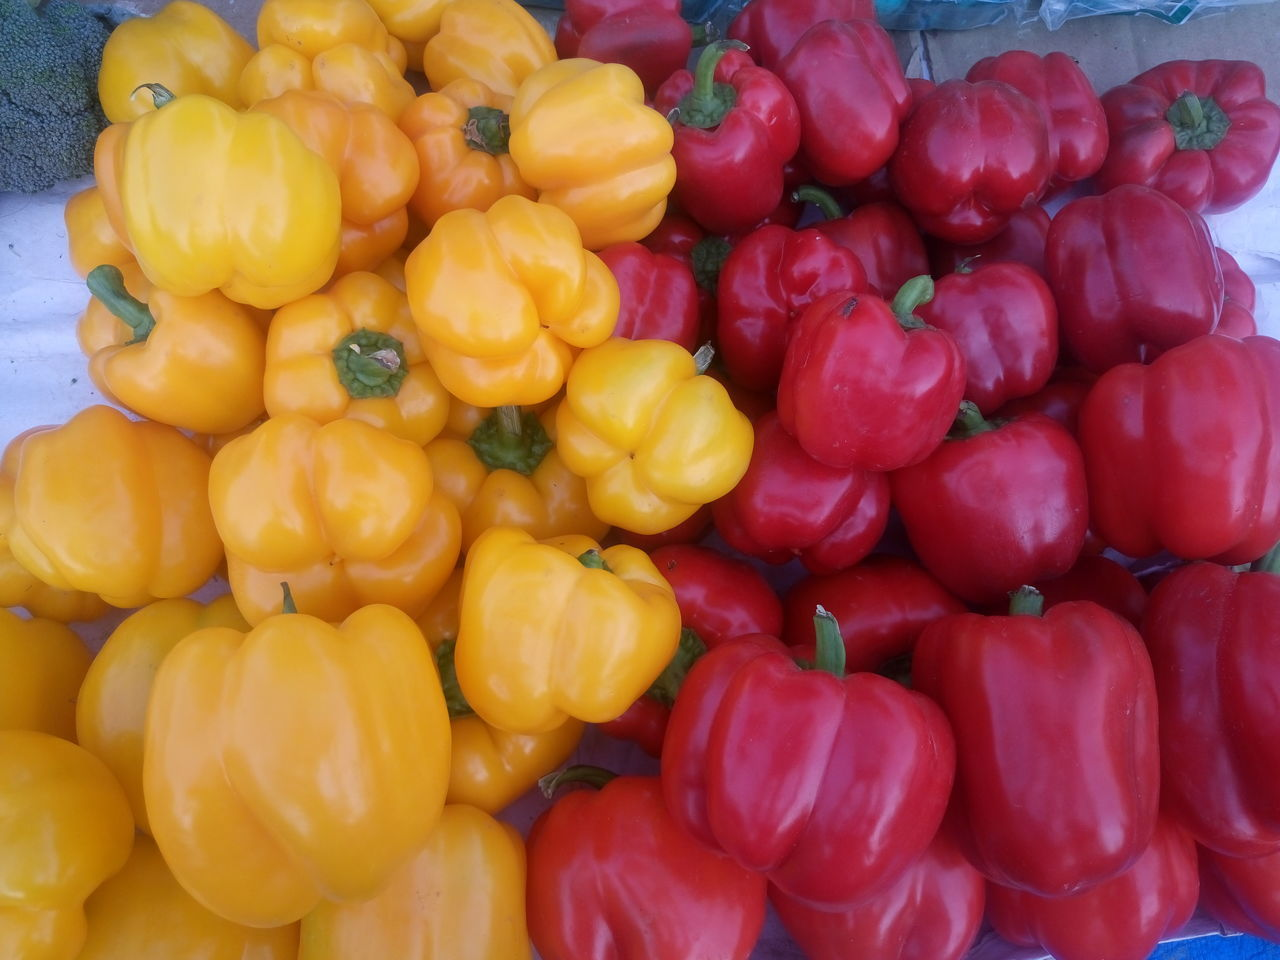 Abundance Backgrounds Bell Pepper Close-up Day Food Food And Drink For Sale Freshness Full Frame Healthy Eating Large Group Of Objects Market Market Stall No People Outdoors Red Bell Pepper Retail  Vegetable Yellow Bell Pepper